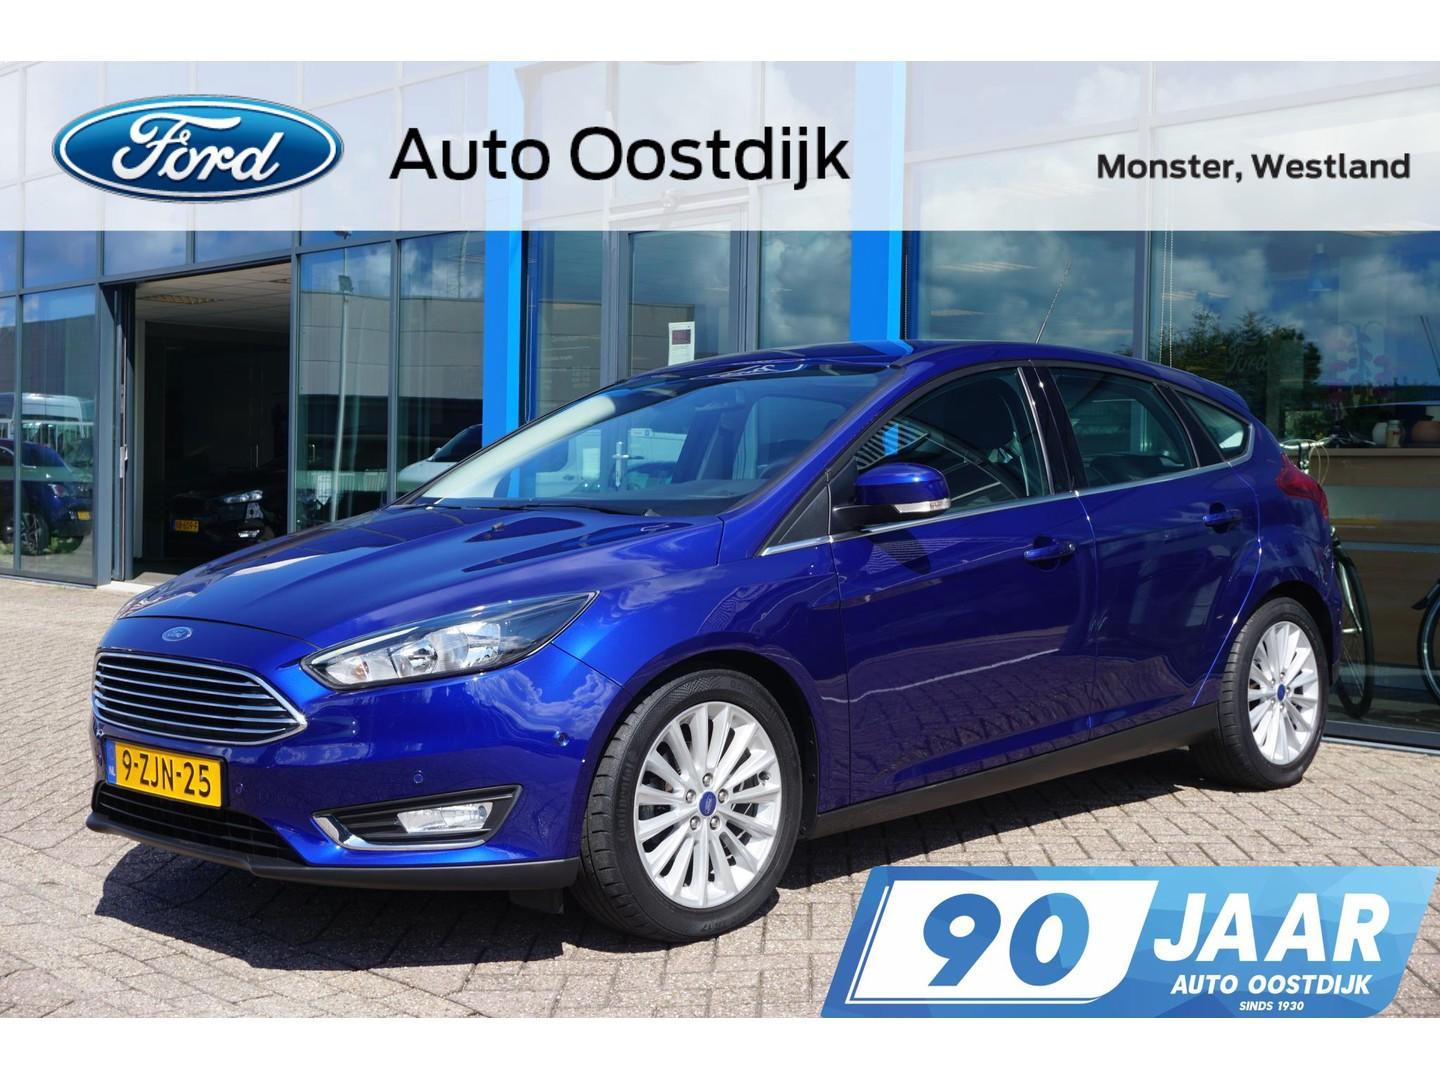 Ford Focus 1.0 first edition 125pk 5-drs navi climate trekhaak parkeersensoren